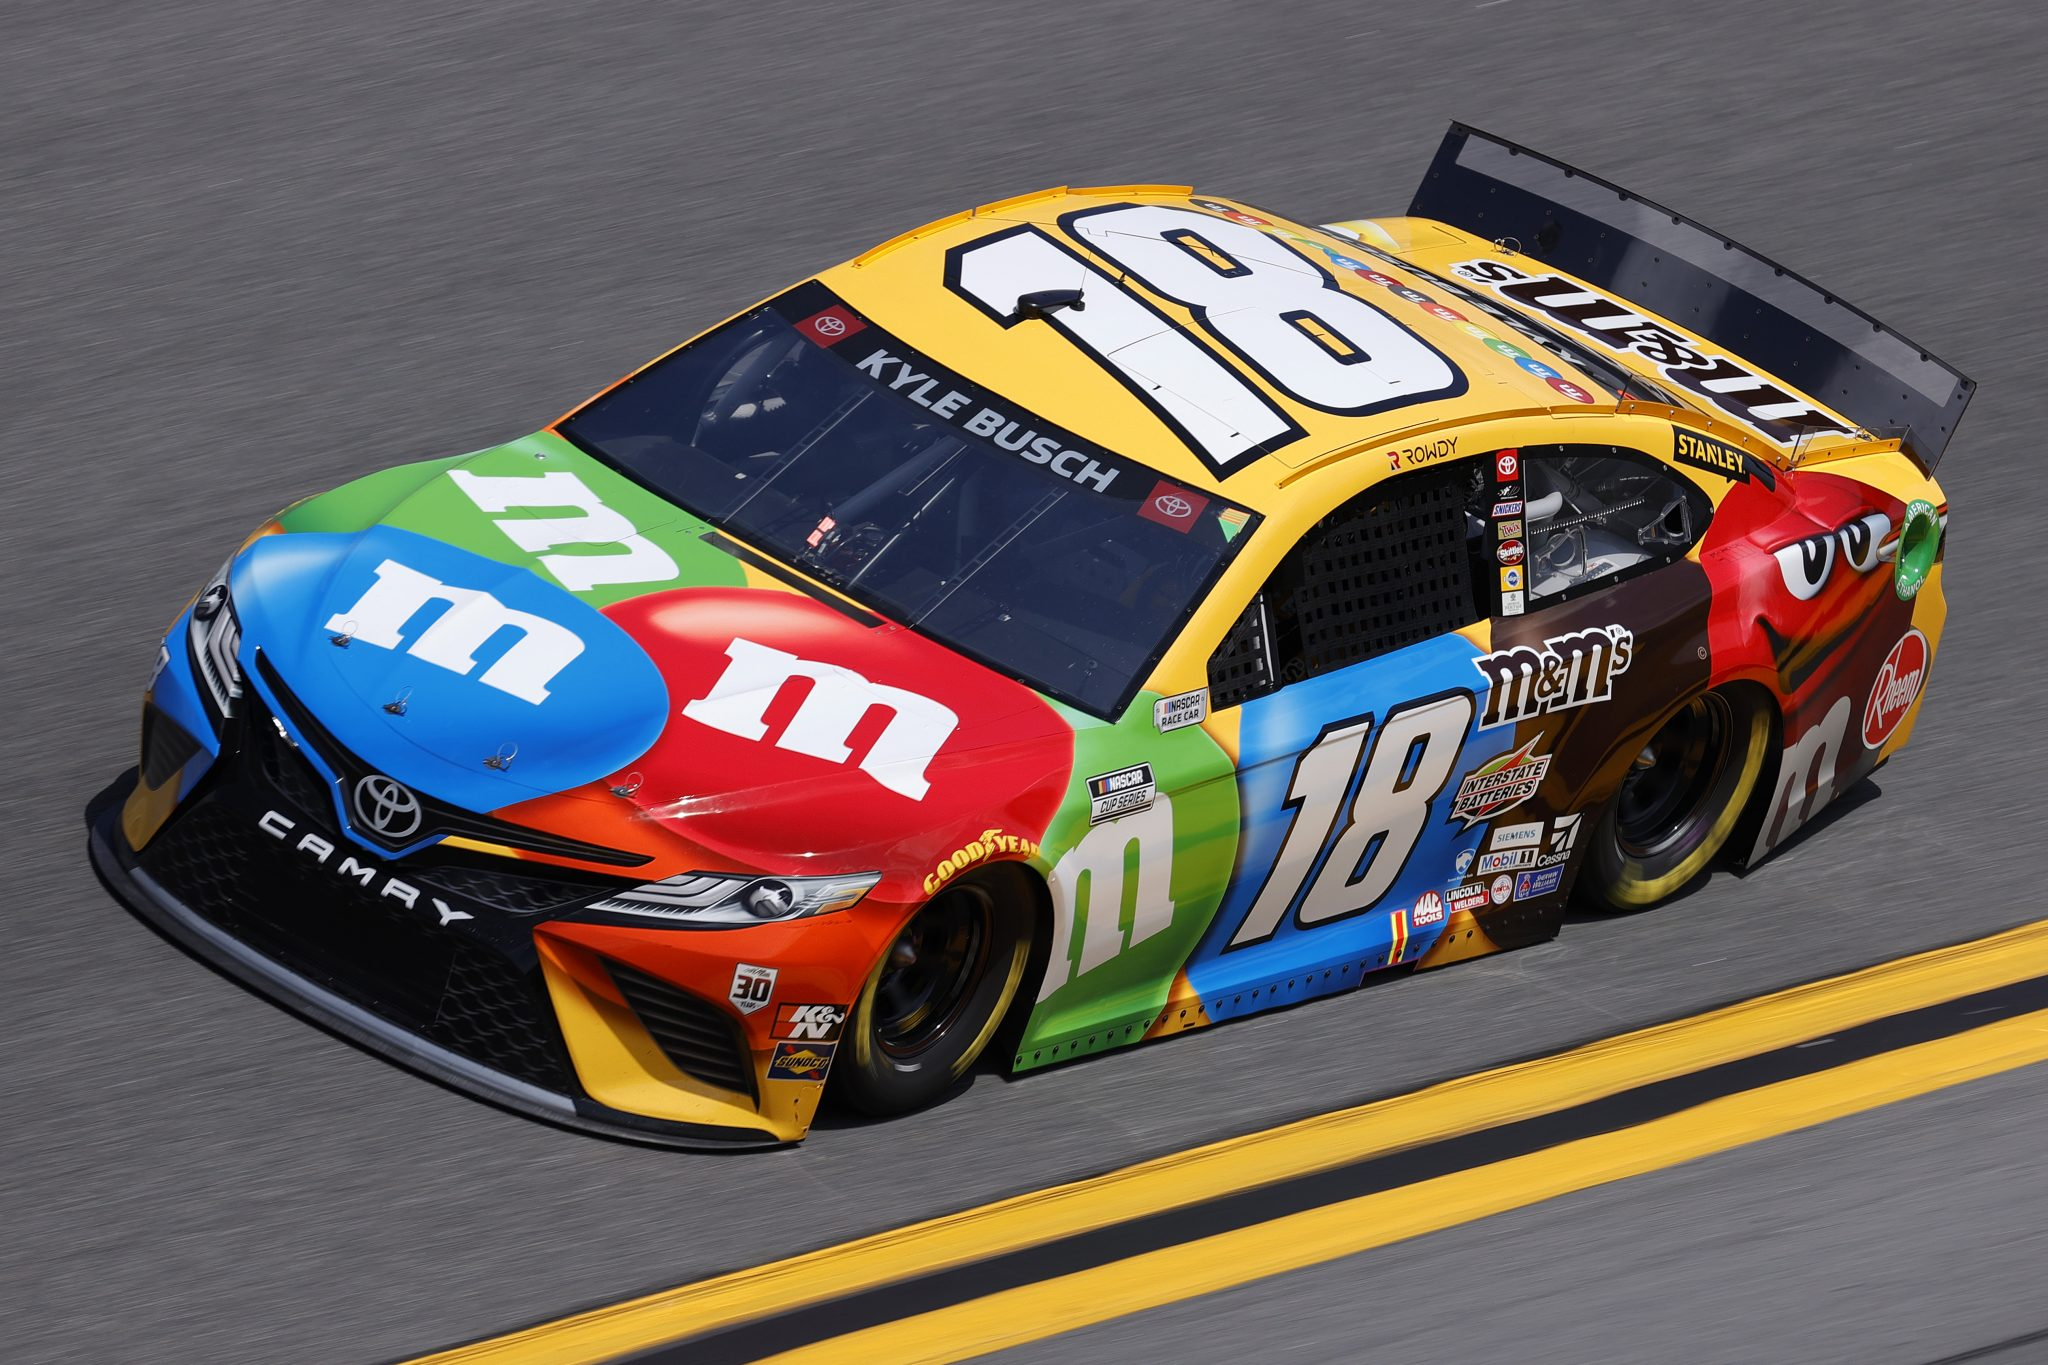 DAYTONA BEACH, FLORIDA - FEBRUARY 10: Kyle Busch, driver of the #18 M&M's Toyota, drives during practice for the NASCAR Cup Series 63rd Annual Daytona 500 at Daytona International Speedway on February 10, 2021 in Daytona Beach, Florida. (Photo by Jared C. Tilton/Getty Images) | Getty Images